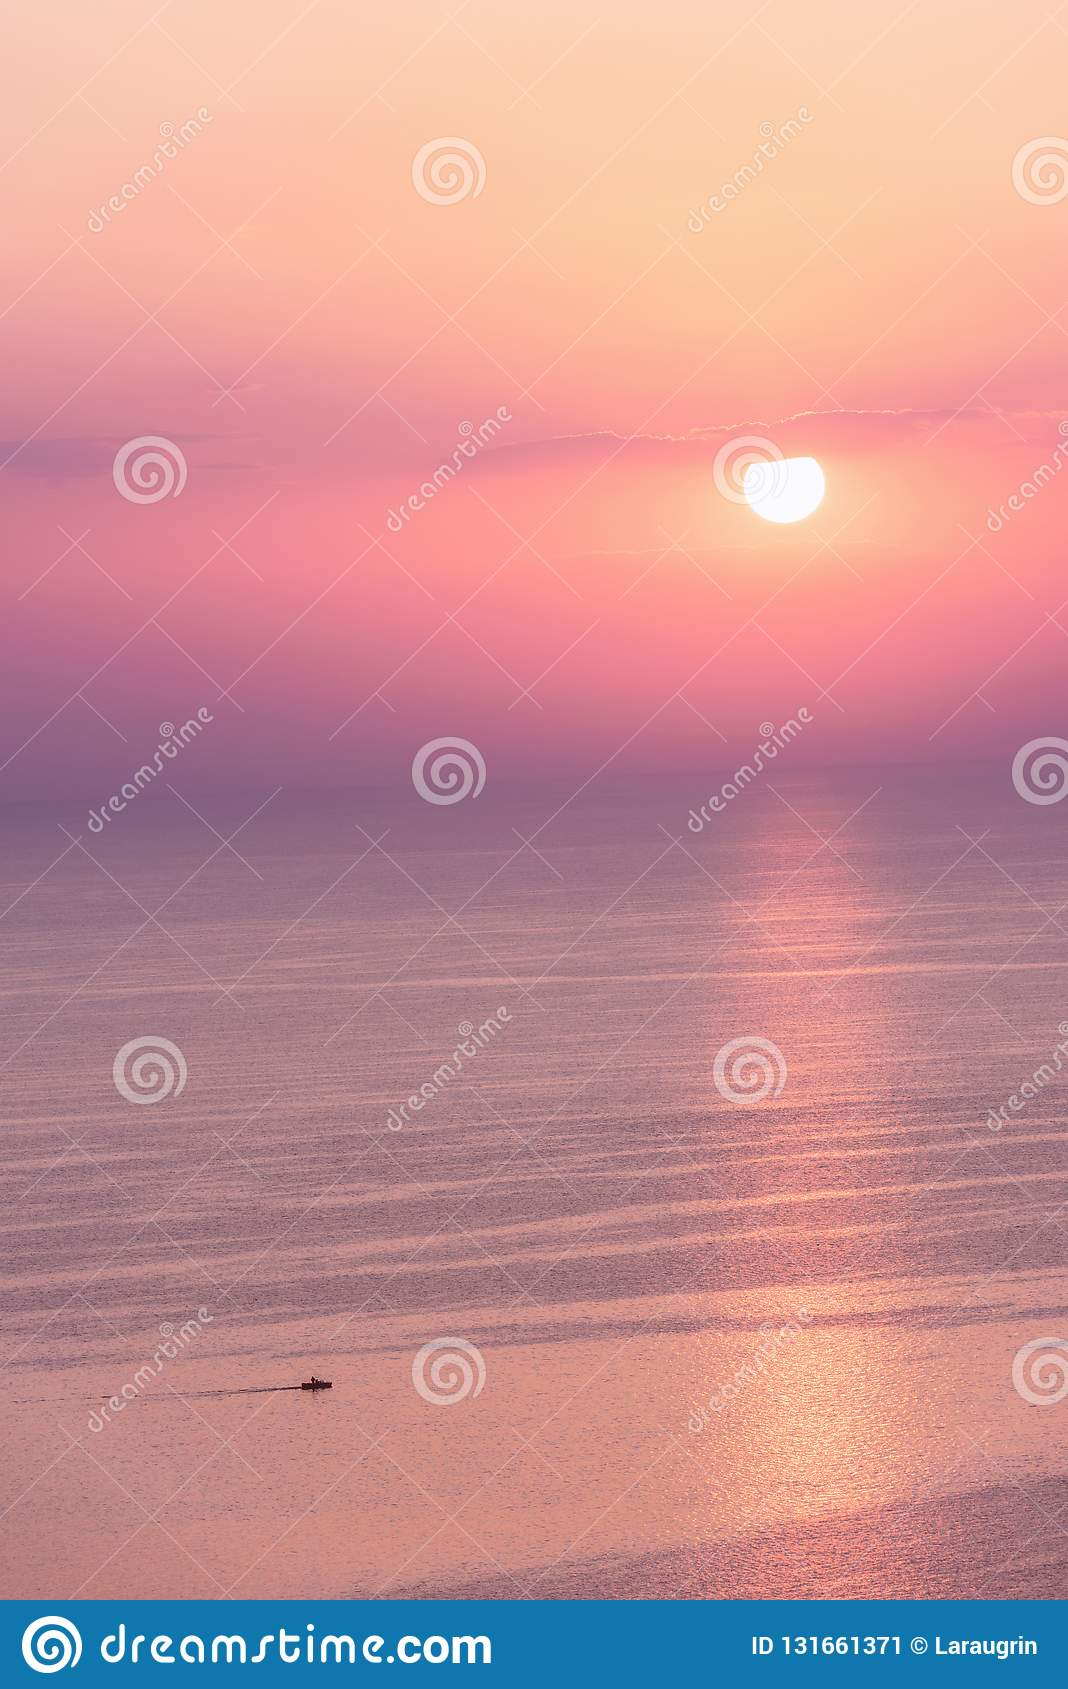 Nice pink sunset seascape in pastel shades, peace and calm outdoor travel background